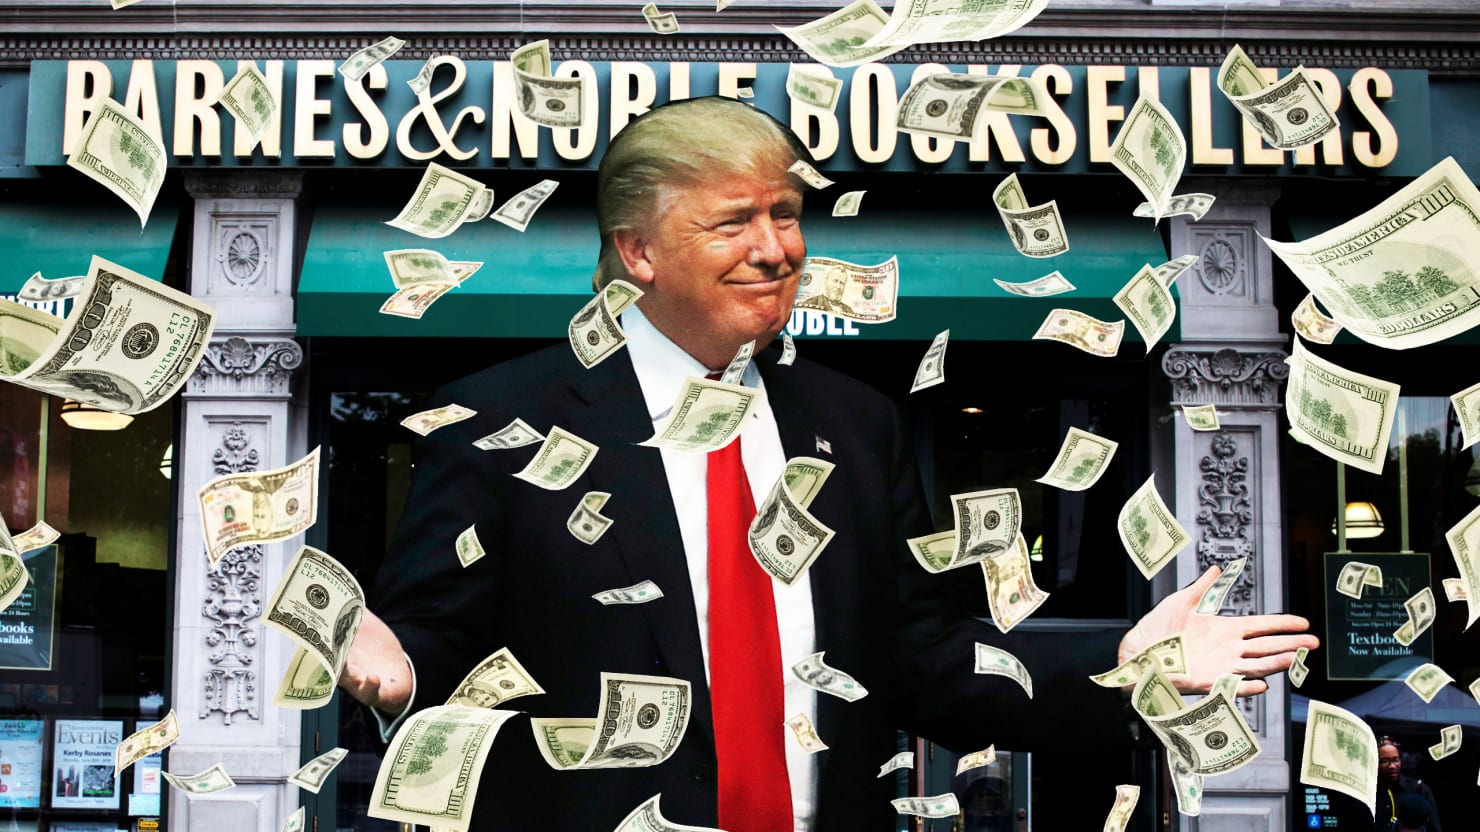 Donald Trump Used Campaign Donations to Buy $55,000 of His Own Book